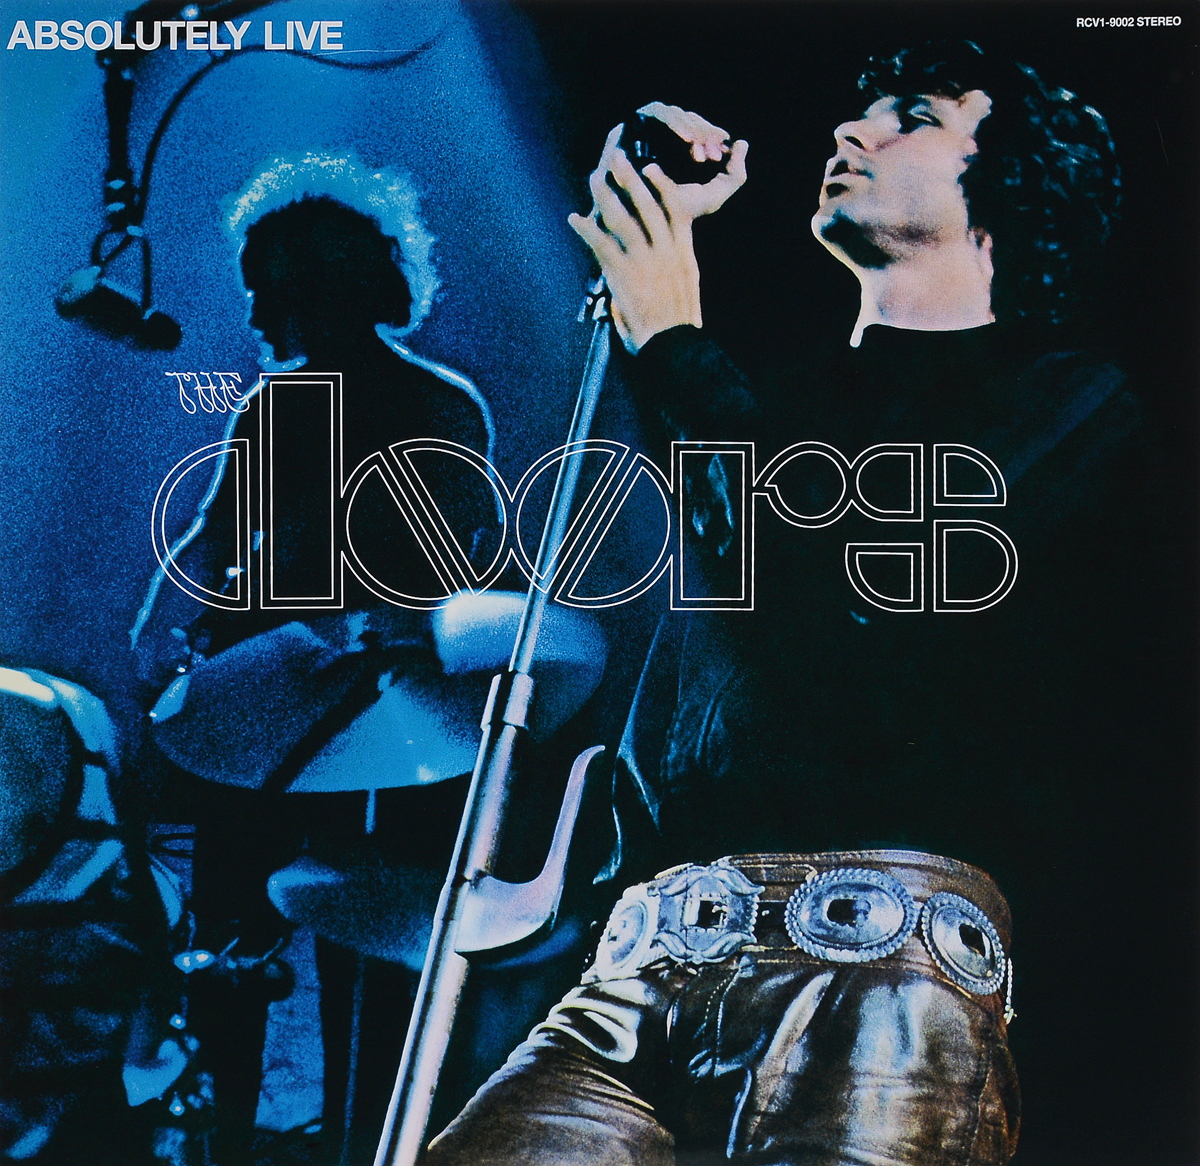 The Doors The Doors. Absolutely Live (2 LP)